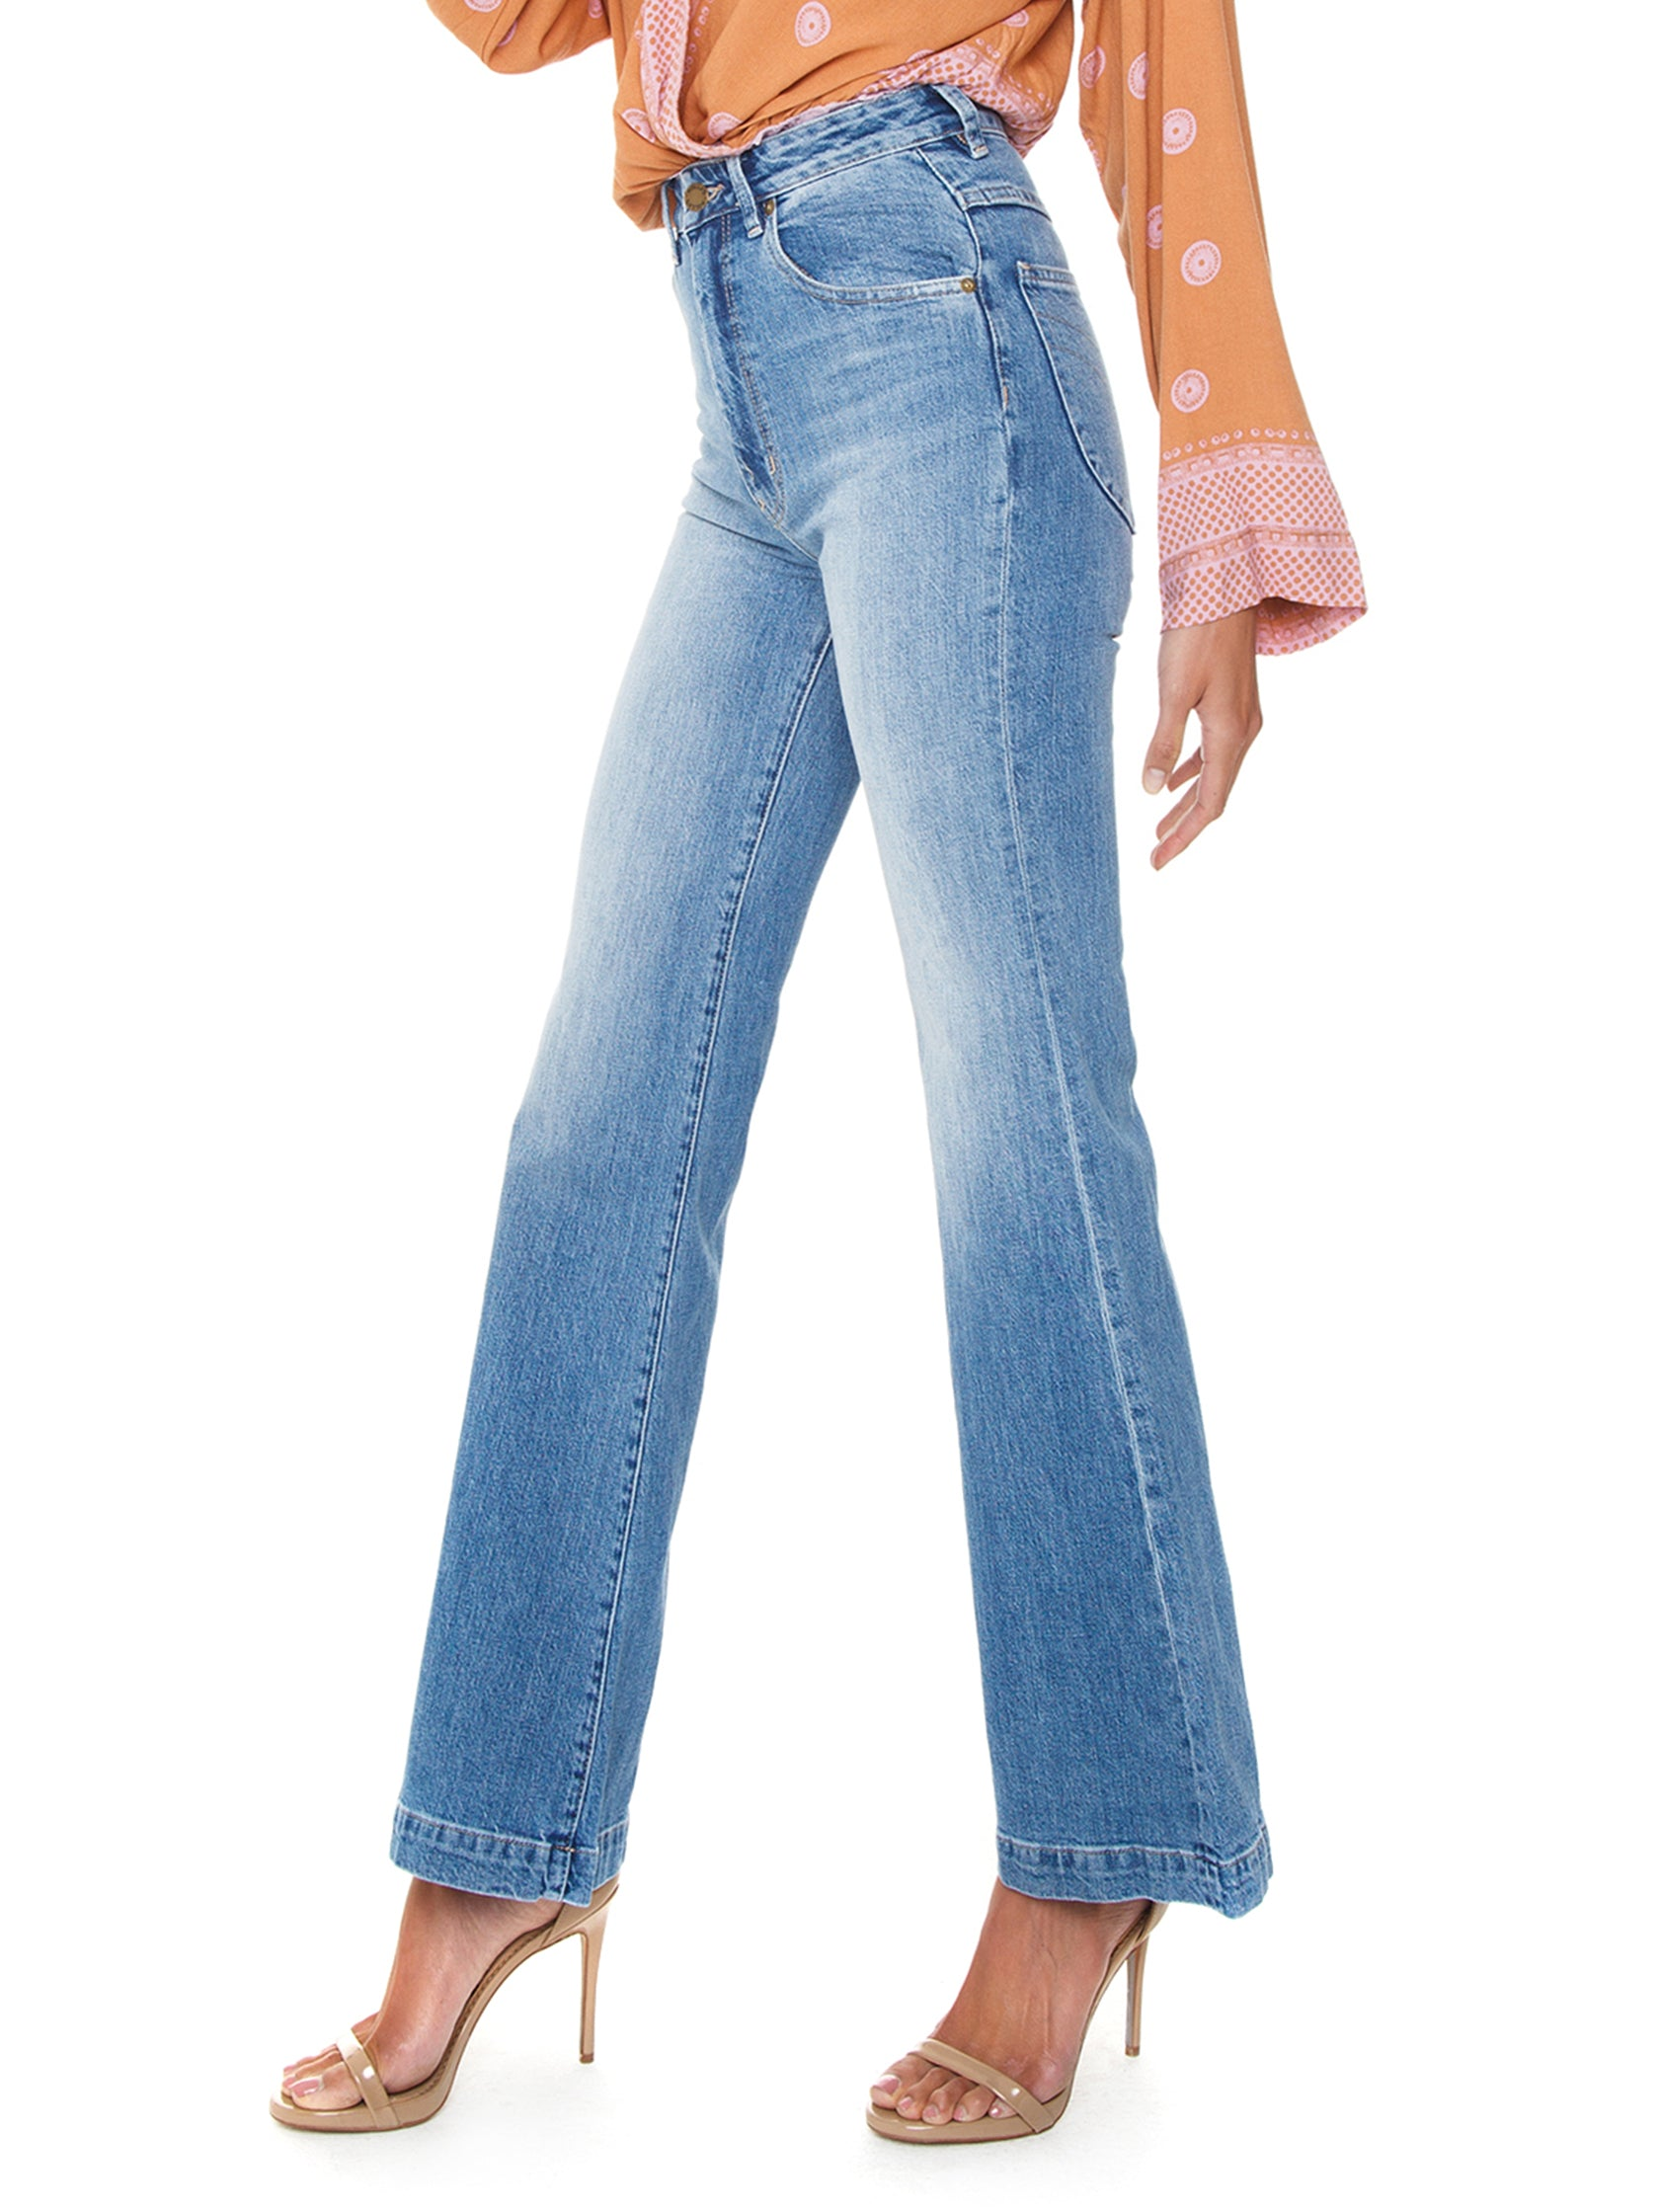 Women wearing a denim rental from ROLLAS called Eastcoast Flare